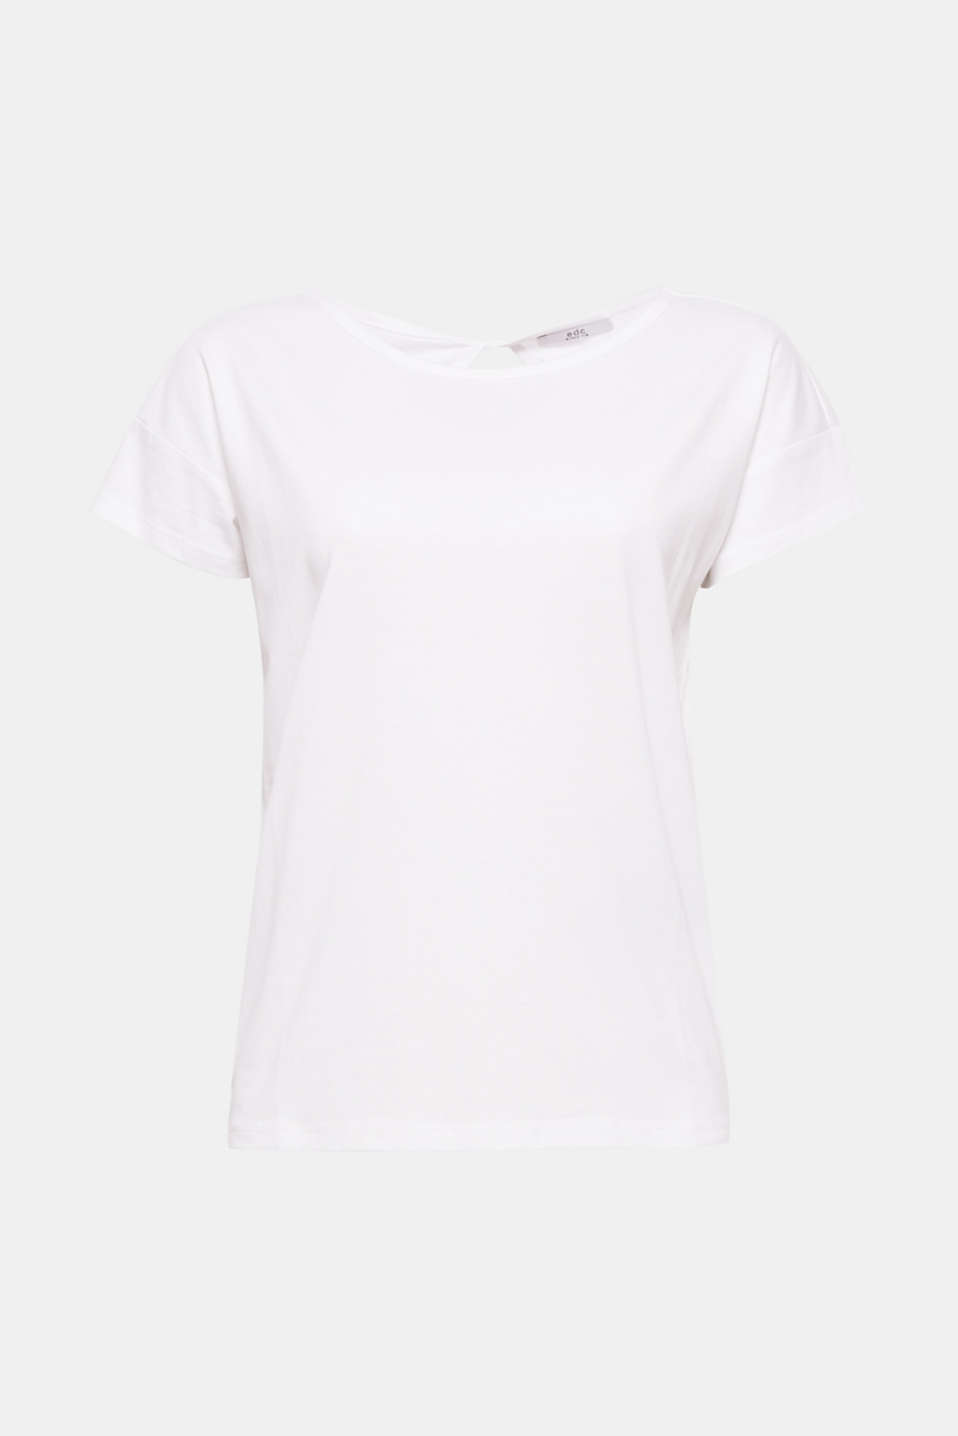 A versatile basic with a twist! The keyhole neckline at the back gives this loose cut T-shirt a certain je ne sais quoi.